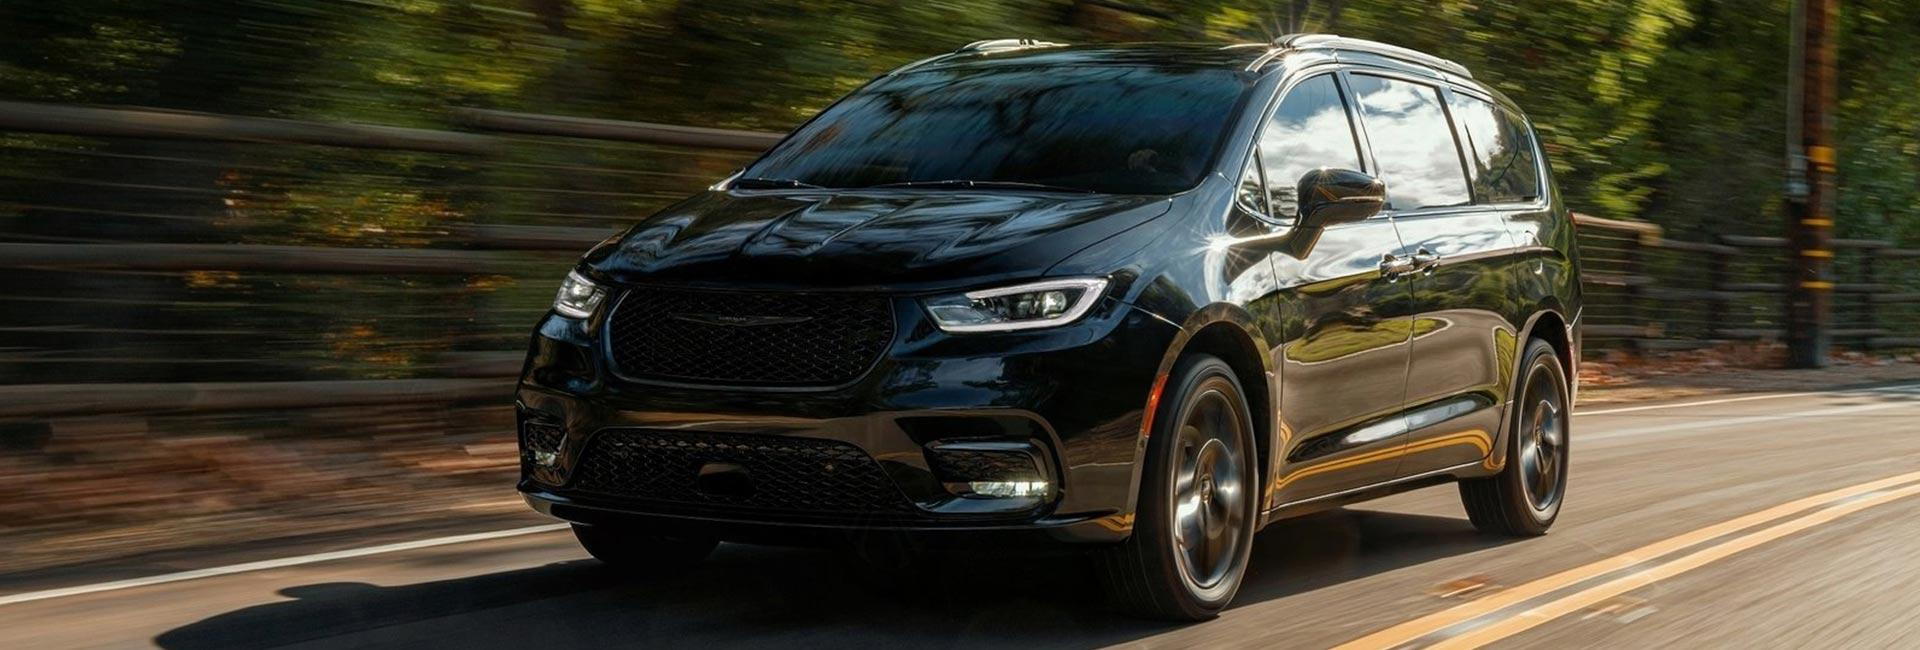 EBlack 2021 Pacifica in motion through a forest road